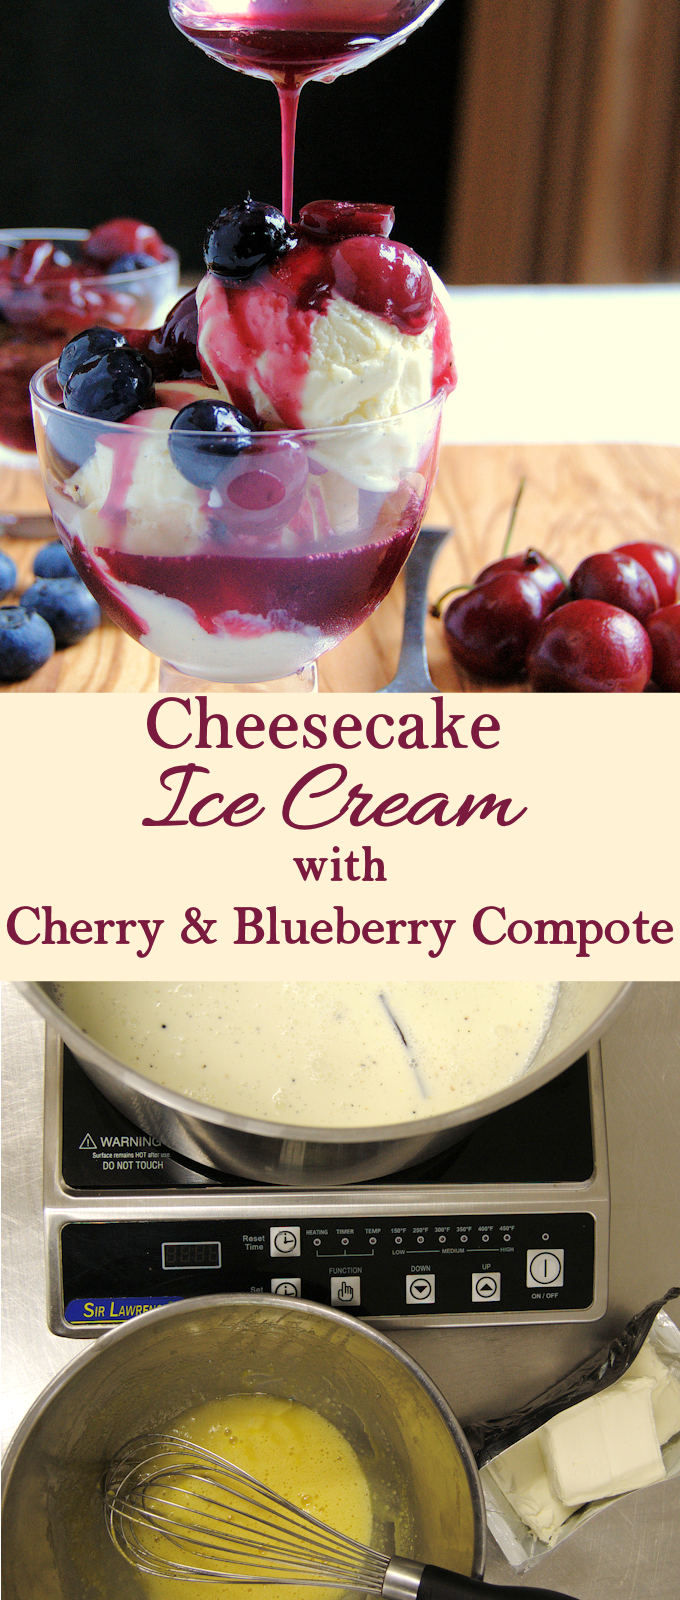 If you love cheesecake with fruit, you'll love this ice cream. The red, white & blue color makes it perfect for summer holiday parties.